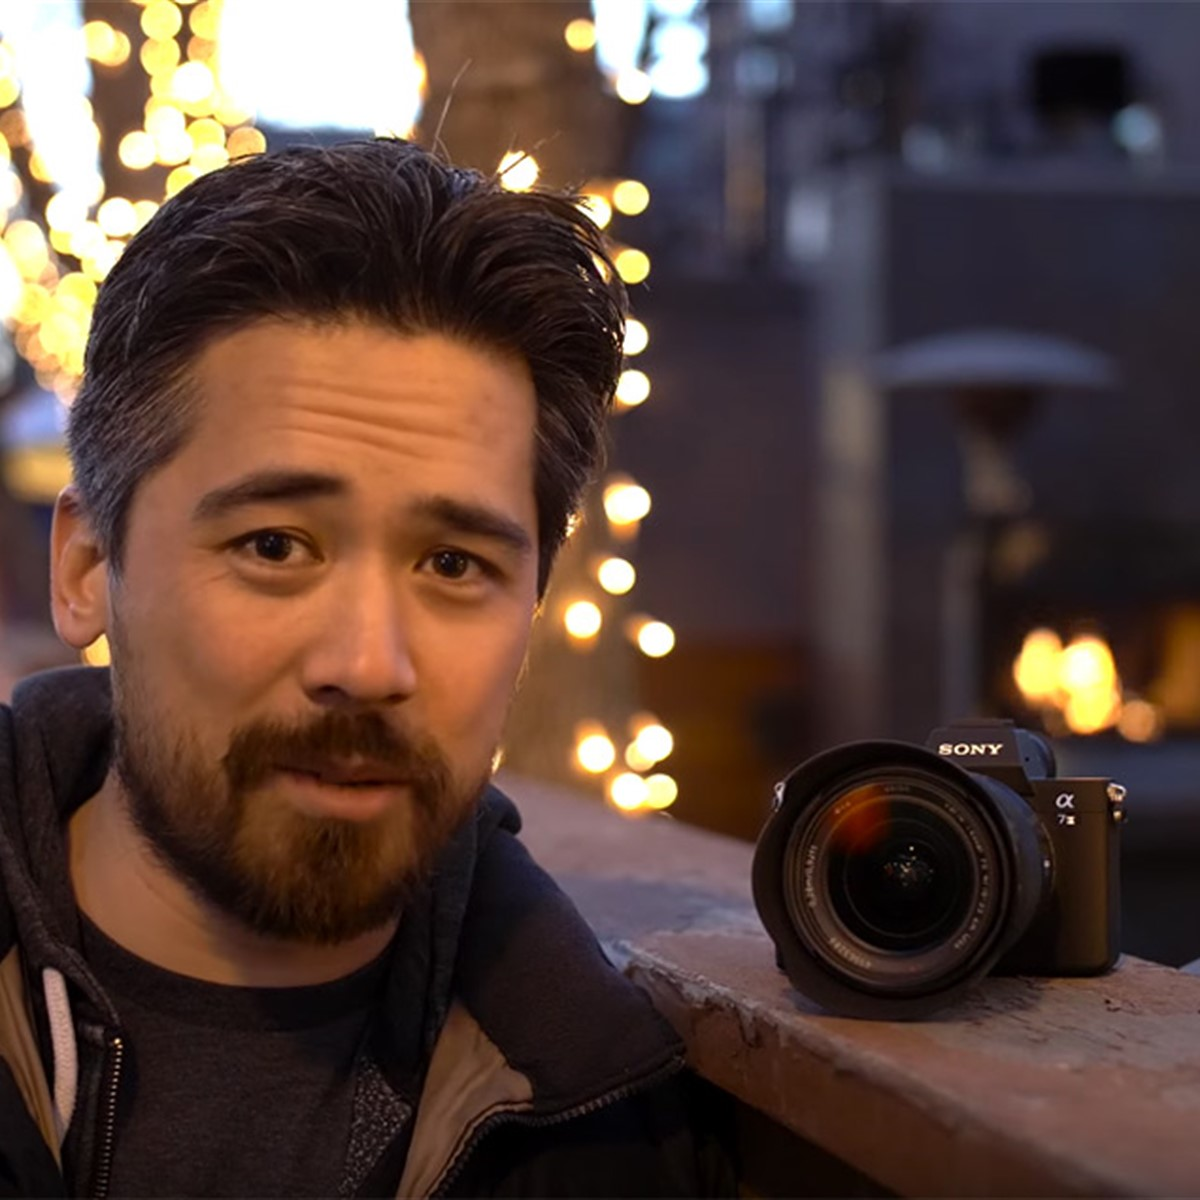 DPReview TV Episode 1: Sony a7 III review: Digital